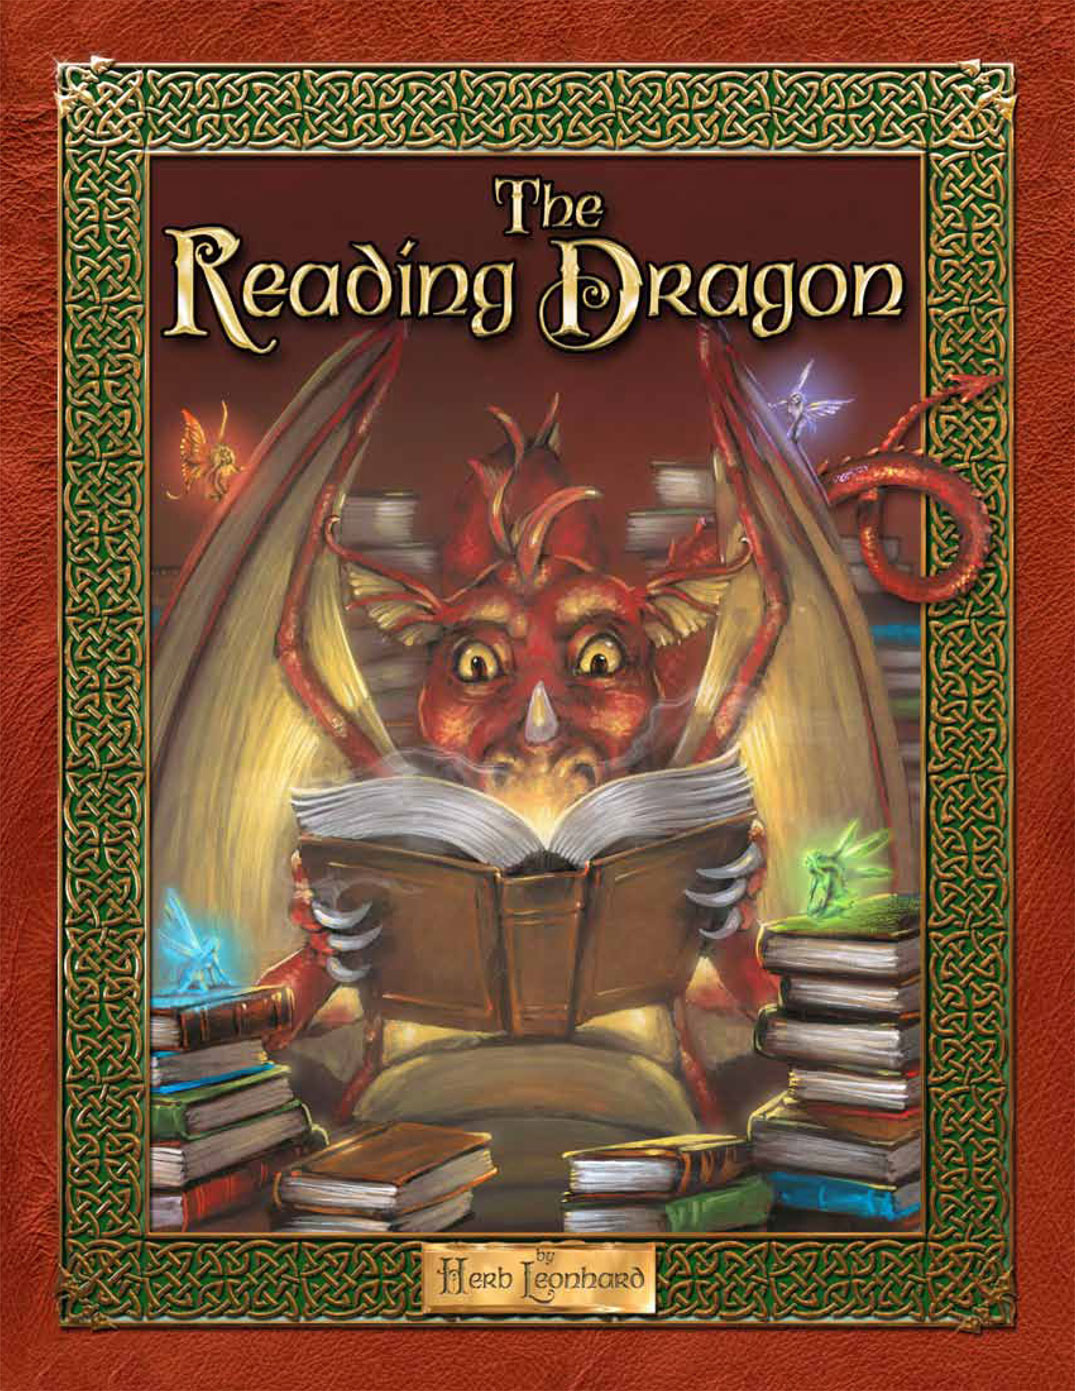 The Reading Dragon